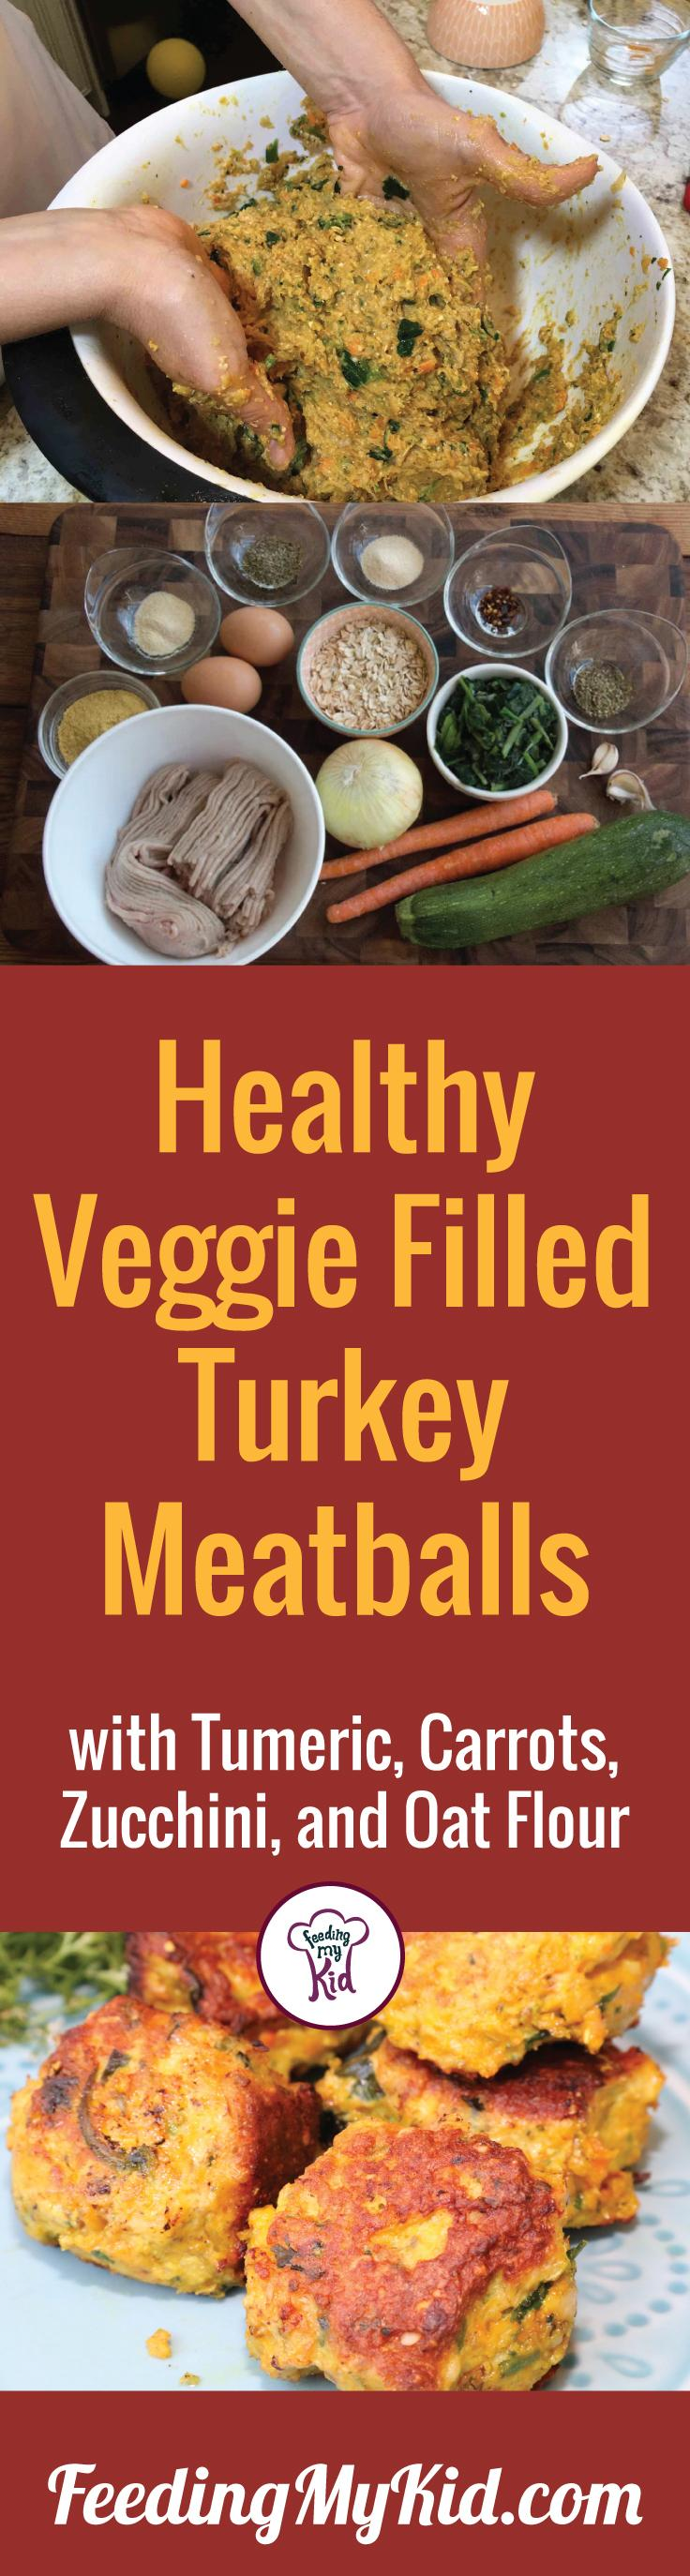 This is an amazing veggie filled turkey meatball recipe. It is so incredibly delicious, the whole family will love this recipes. Feeding My Kid is a filled with all the information you need about how to raise your kids, from healthy tips to nutritious recipes. #FeedingMyKid #turkeymeatballrecipes #recipes #dinner #meatballrecipe